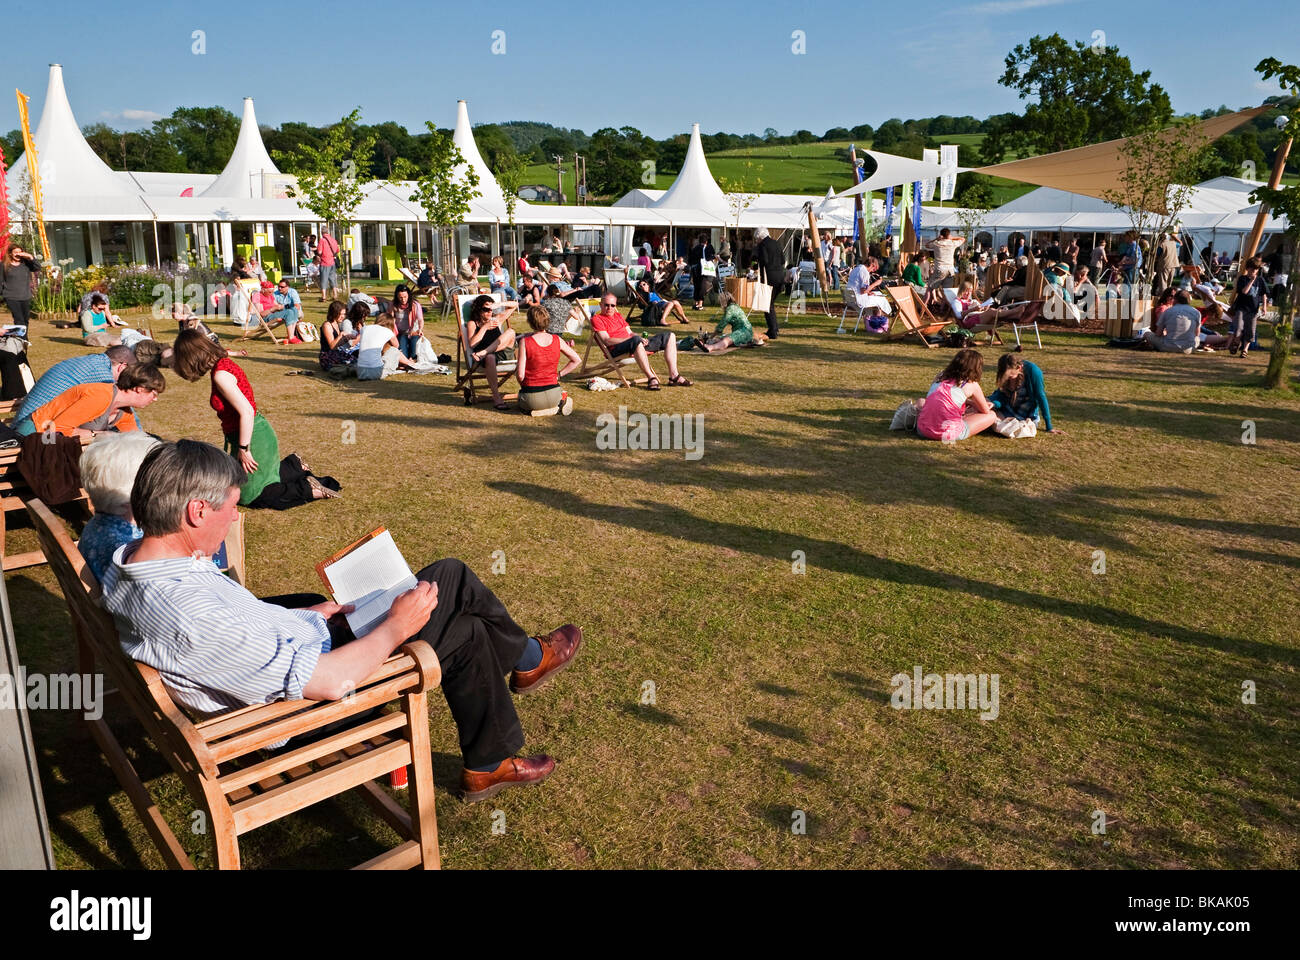 The 2009 Hay Festival of Literature and the Arts, Hay-on-Wye, Powys, UK. A fine afternoon - Stock Image